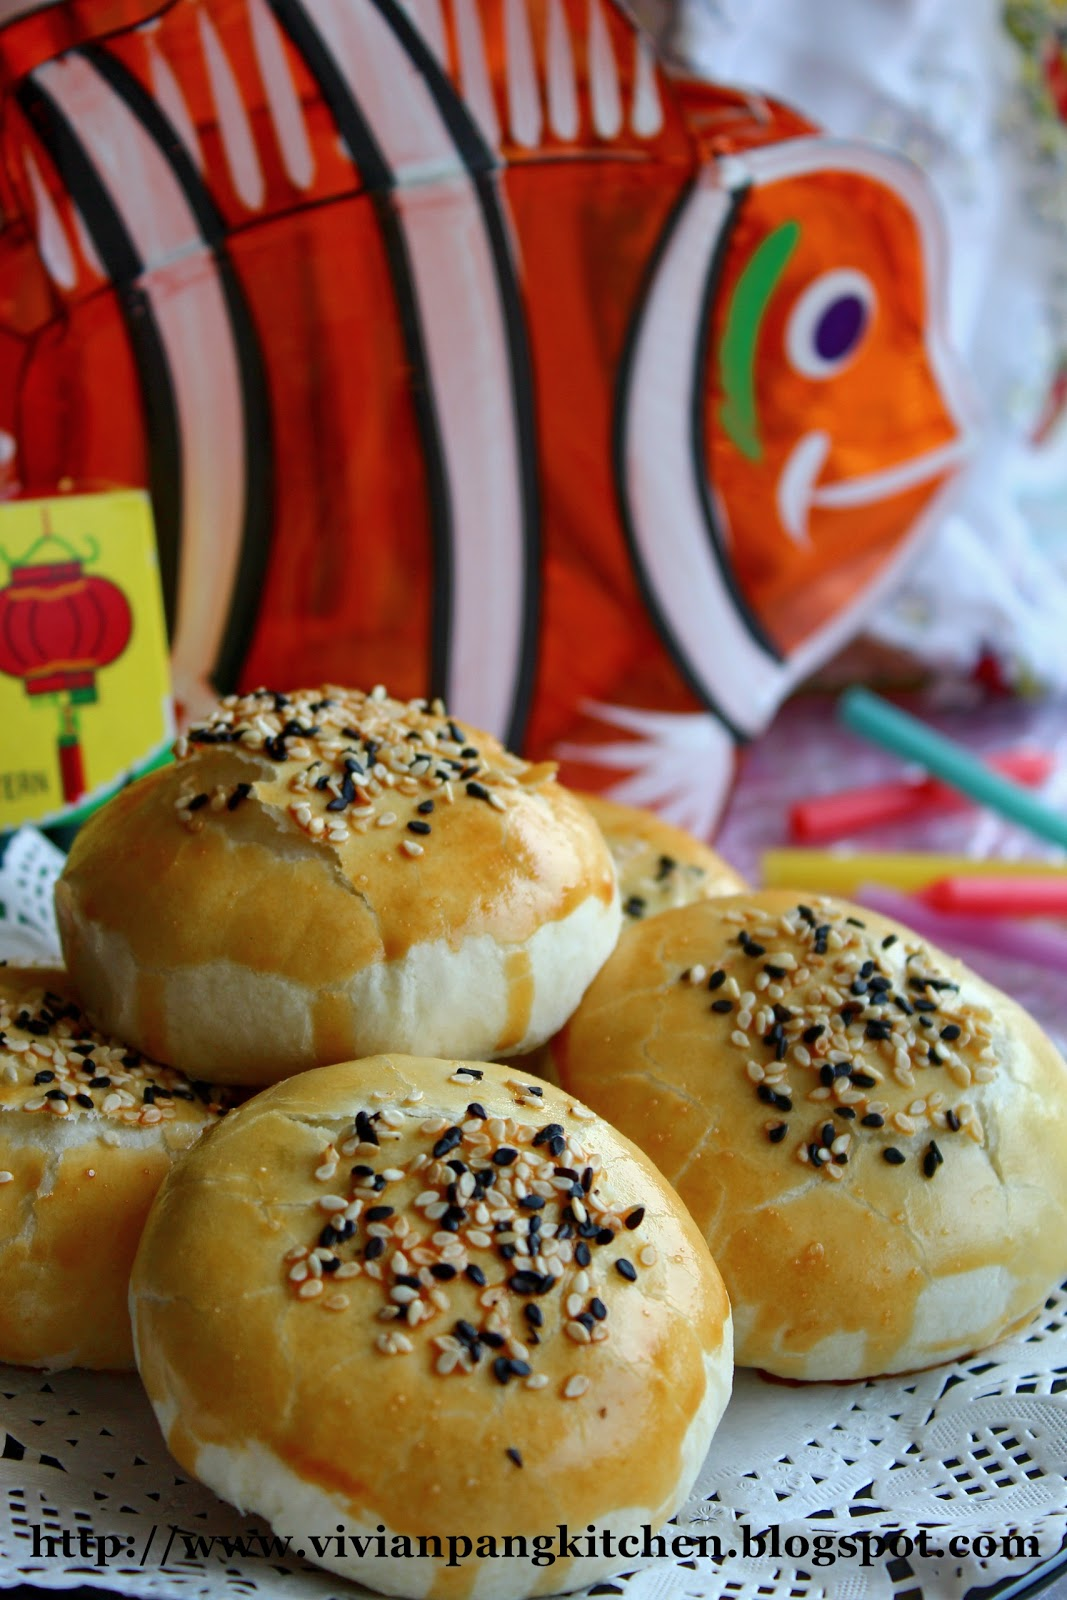 Vivian Pang Kitchen: Flaky Mooncake with Red Bean Filling